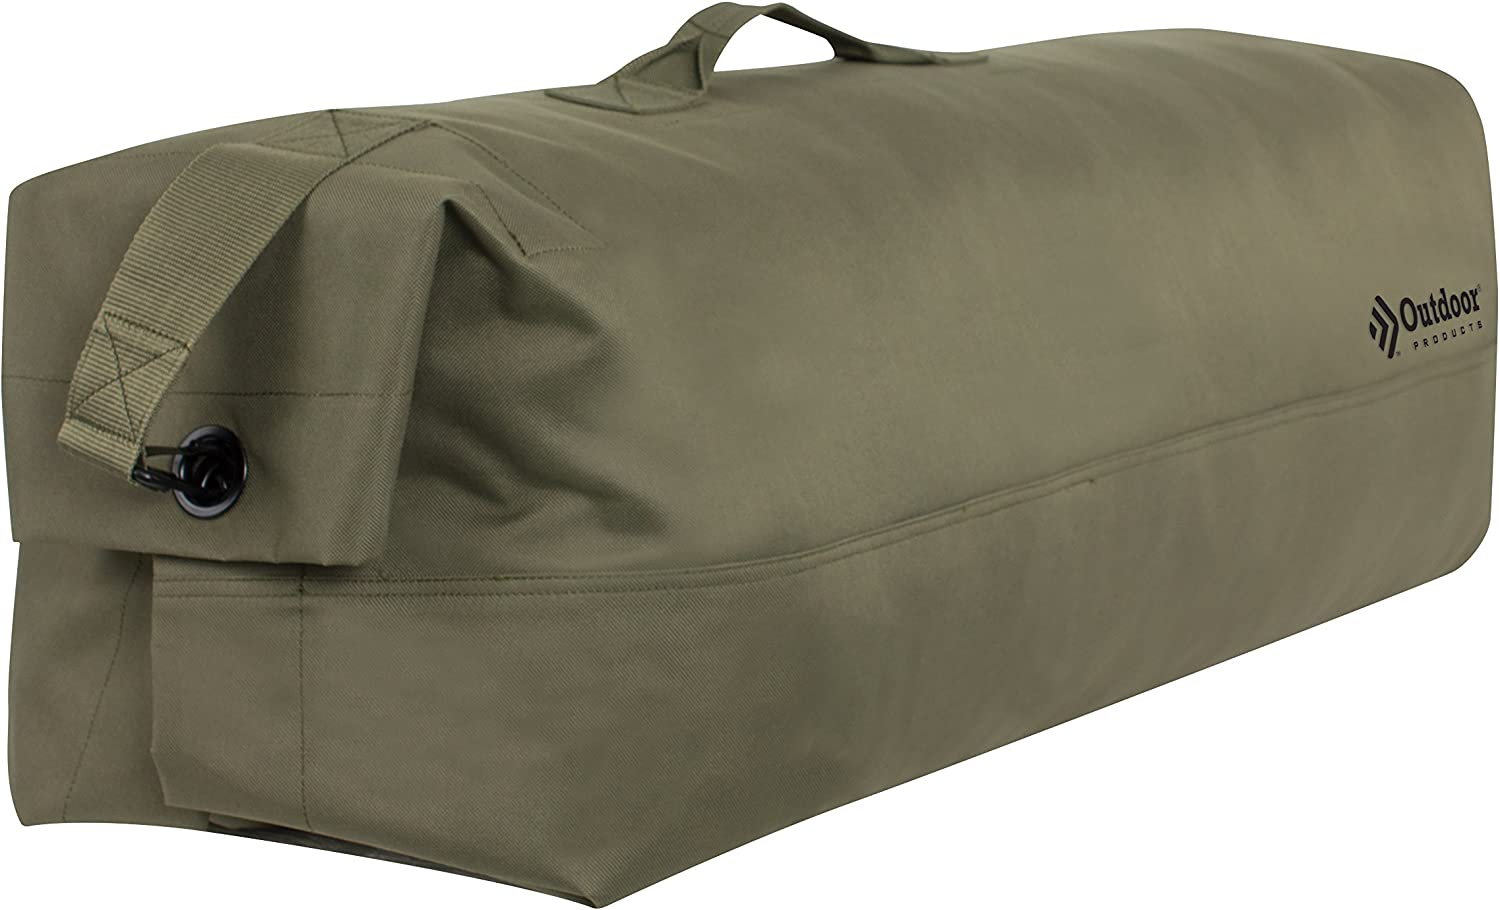 Outdoor Products GI Canvas Duffle Bag, 104.9-Liter Storage, Green